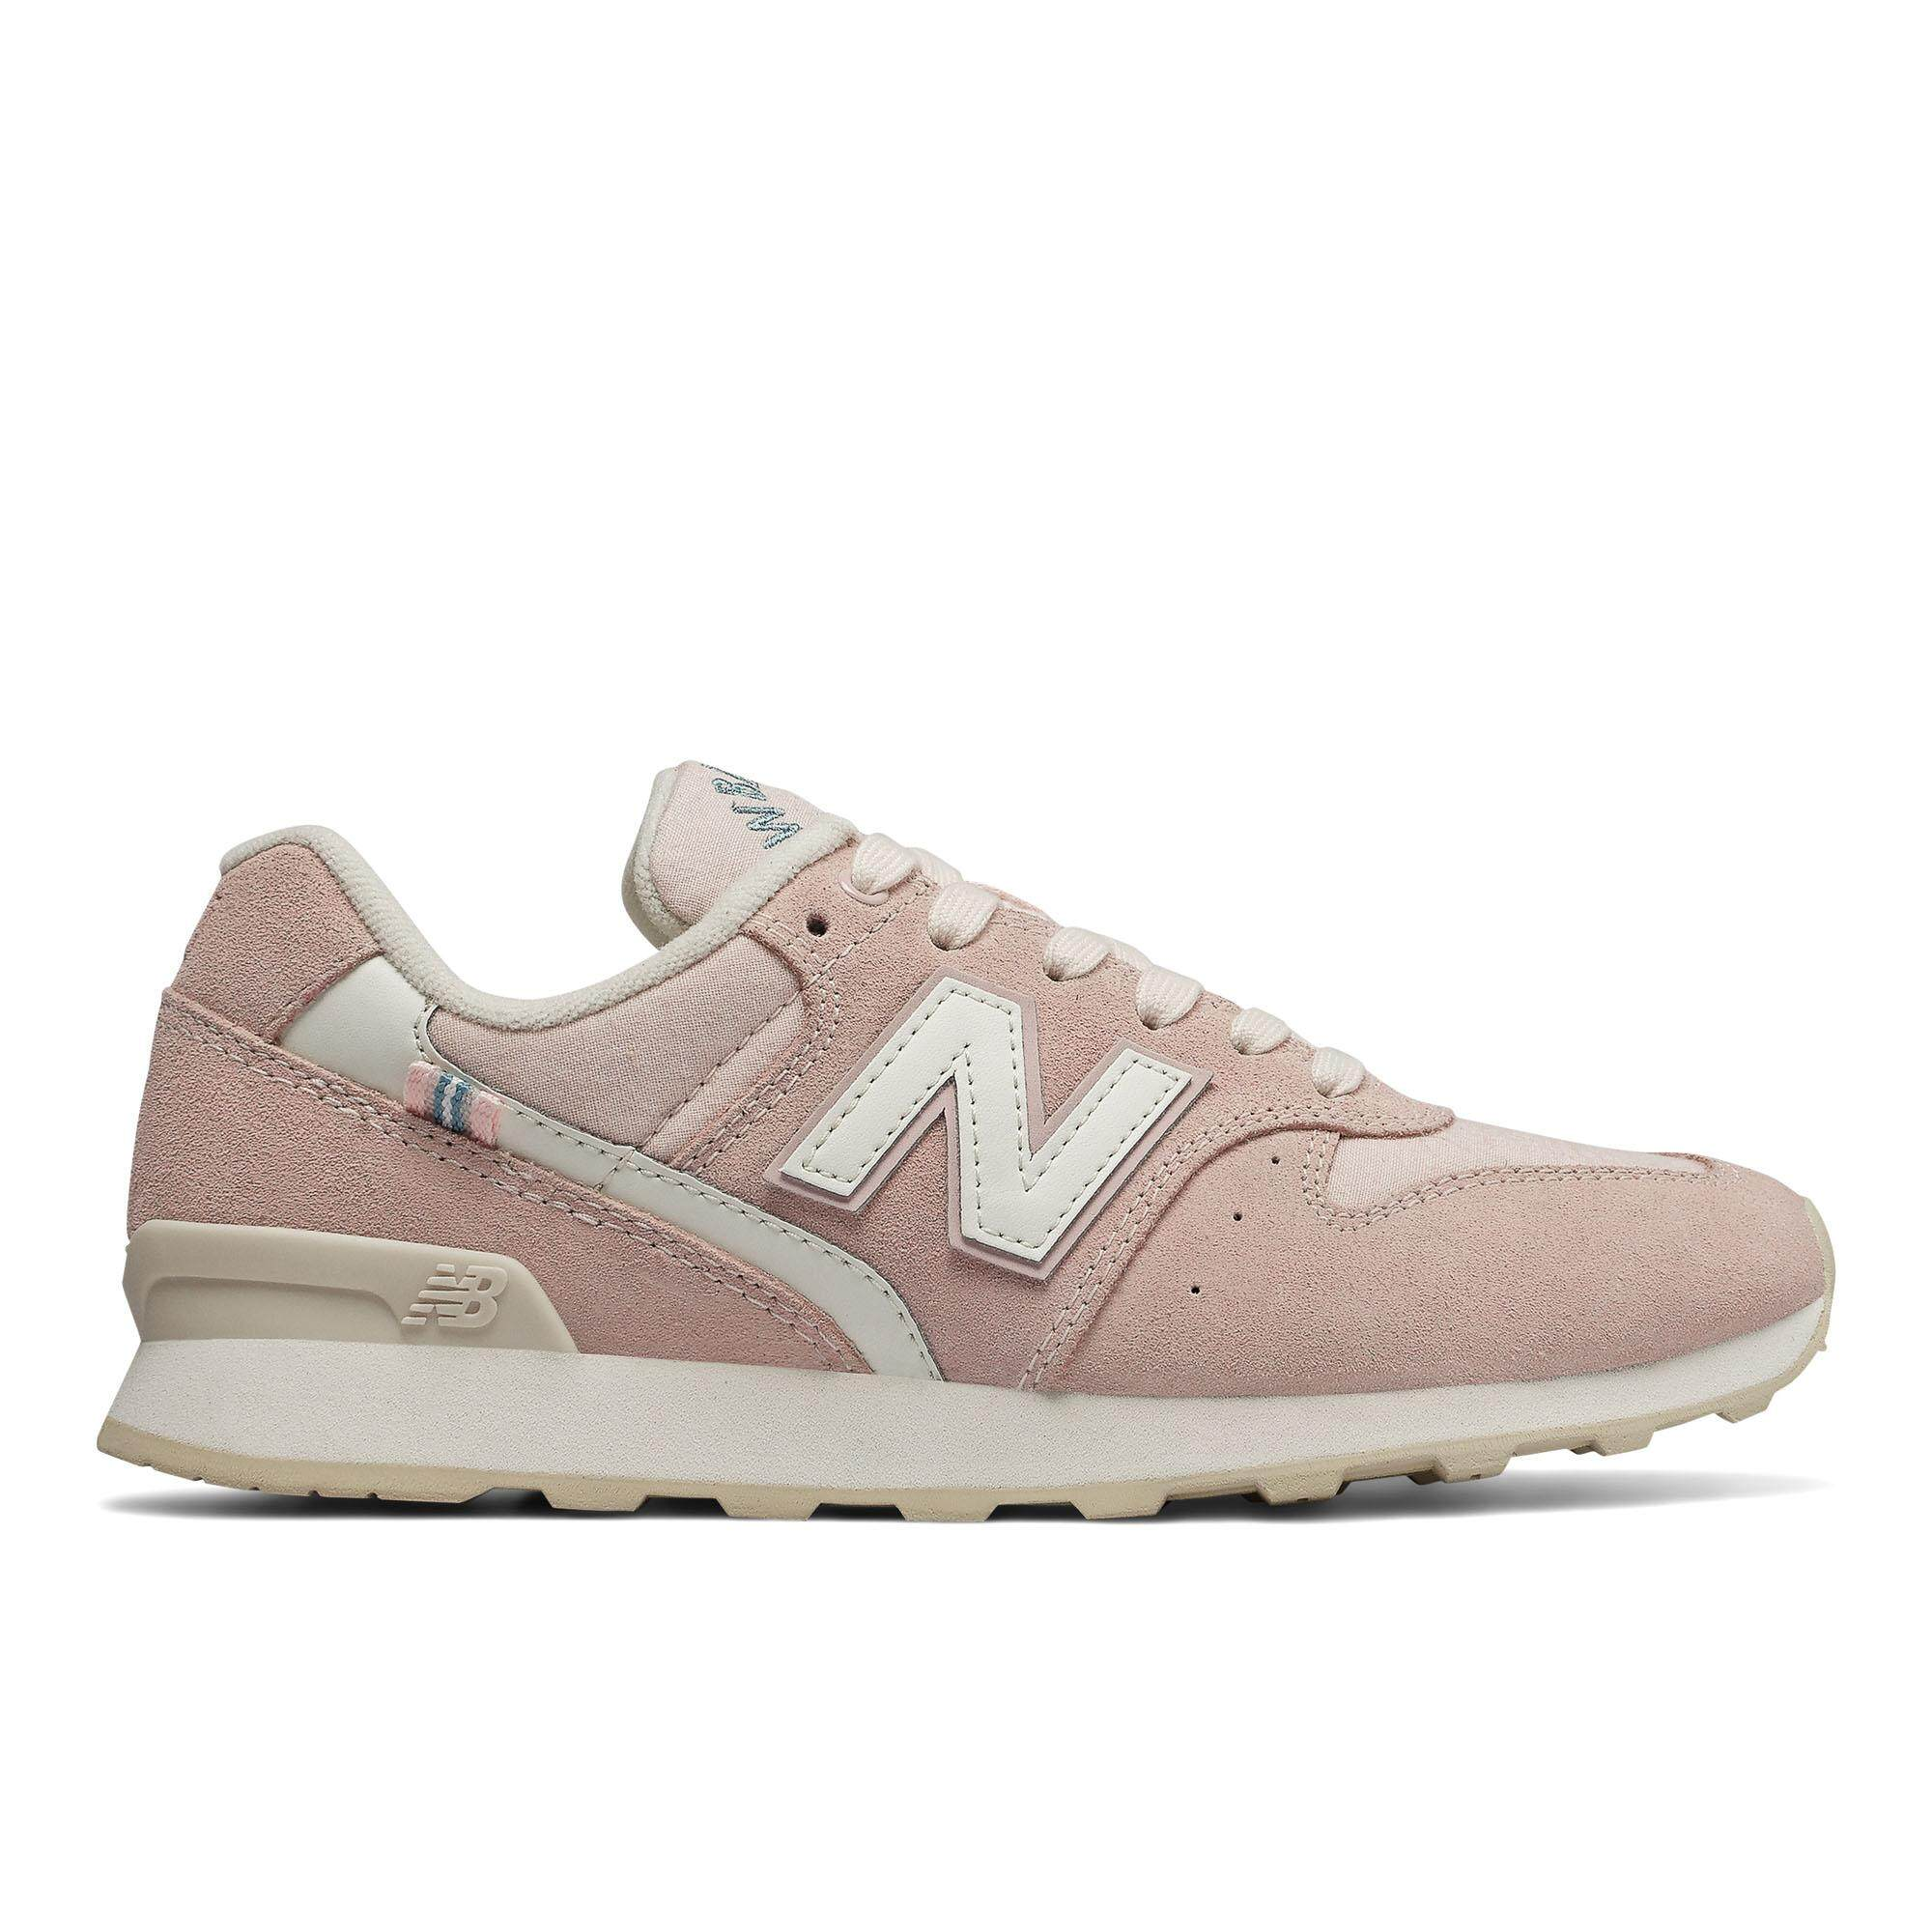 new concept aad13 d5408 New Balance Women s Lifesyle Shoes - 996 (Pink)